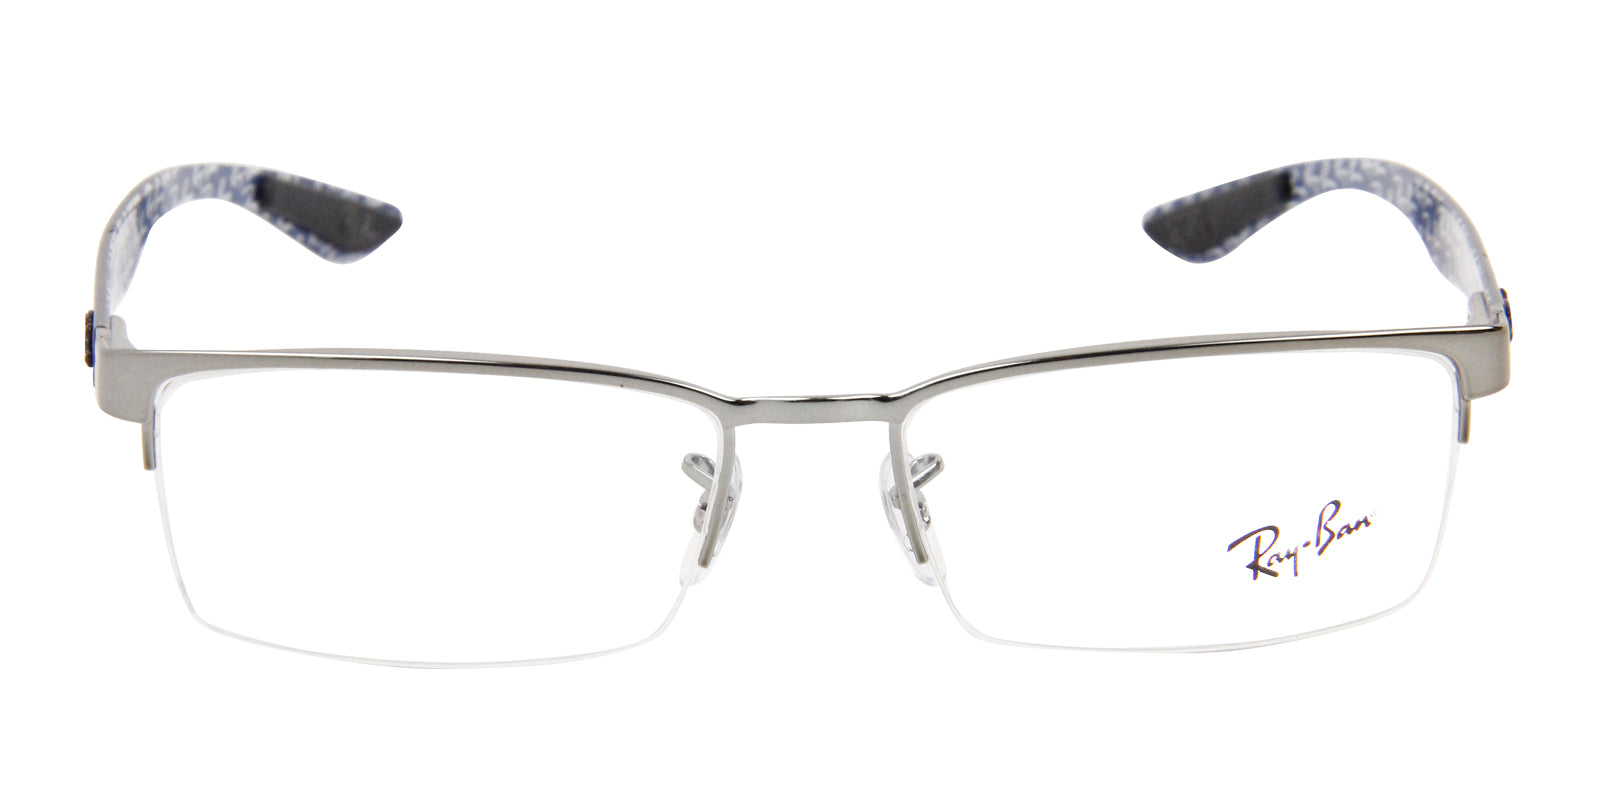 164436872d6 Ray-Ban RX 8412 2502 Gunmetal Eyeglasses - 54 mm – shadesdaddy